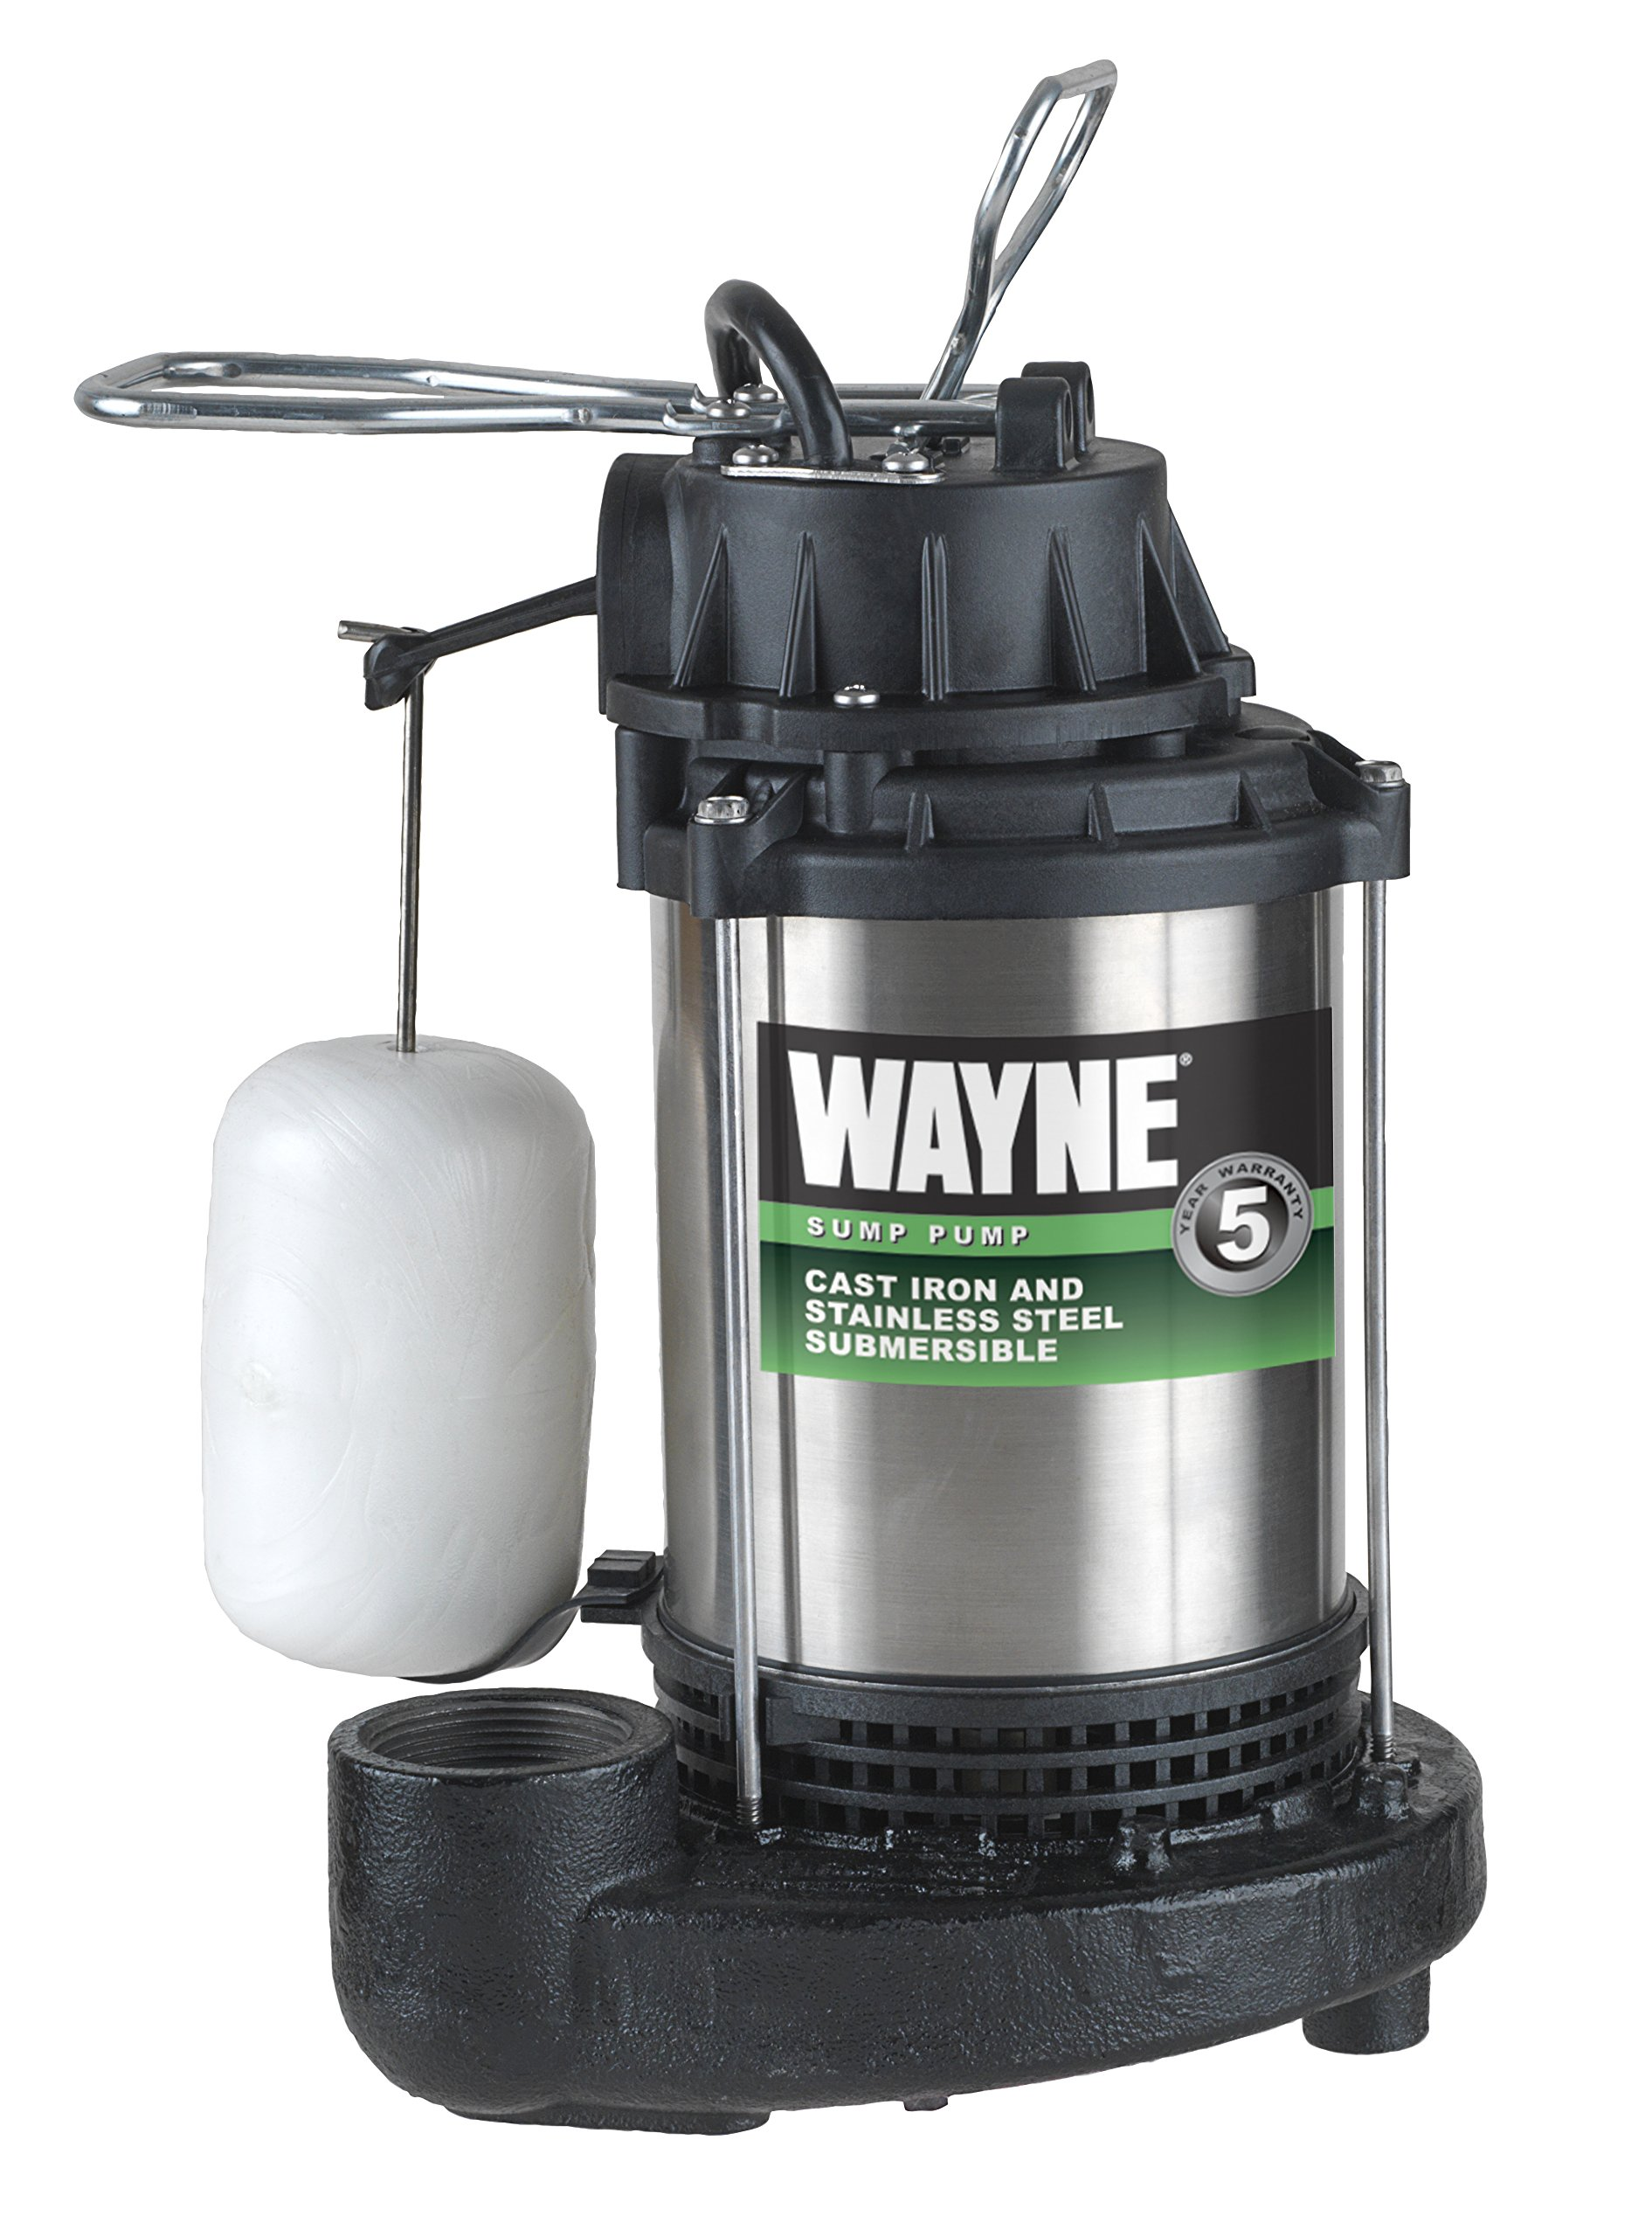 WAYNE CDU980E 3/4 HP Submersible Cast Iron and Stainless Steel Sump Pump With Integrated Vertical Float Switch by Wayne